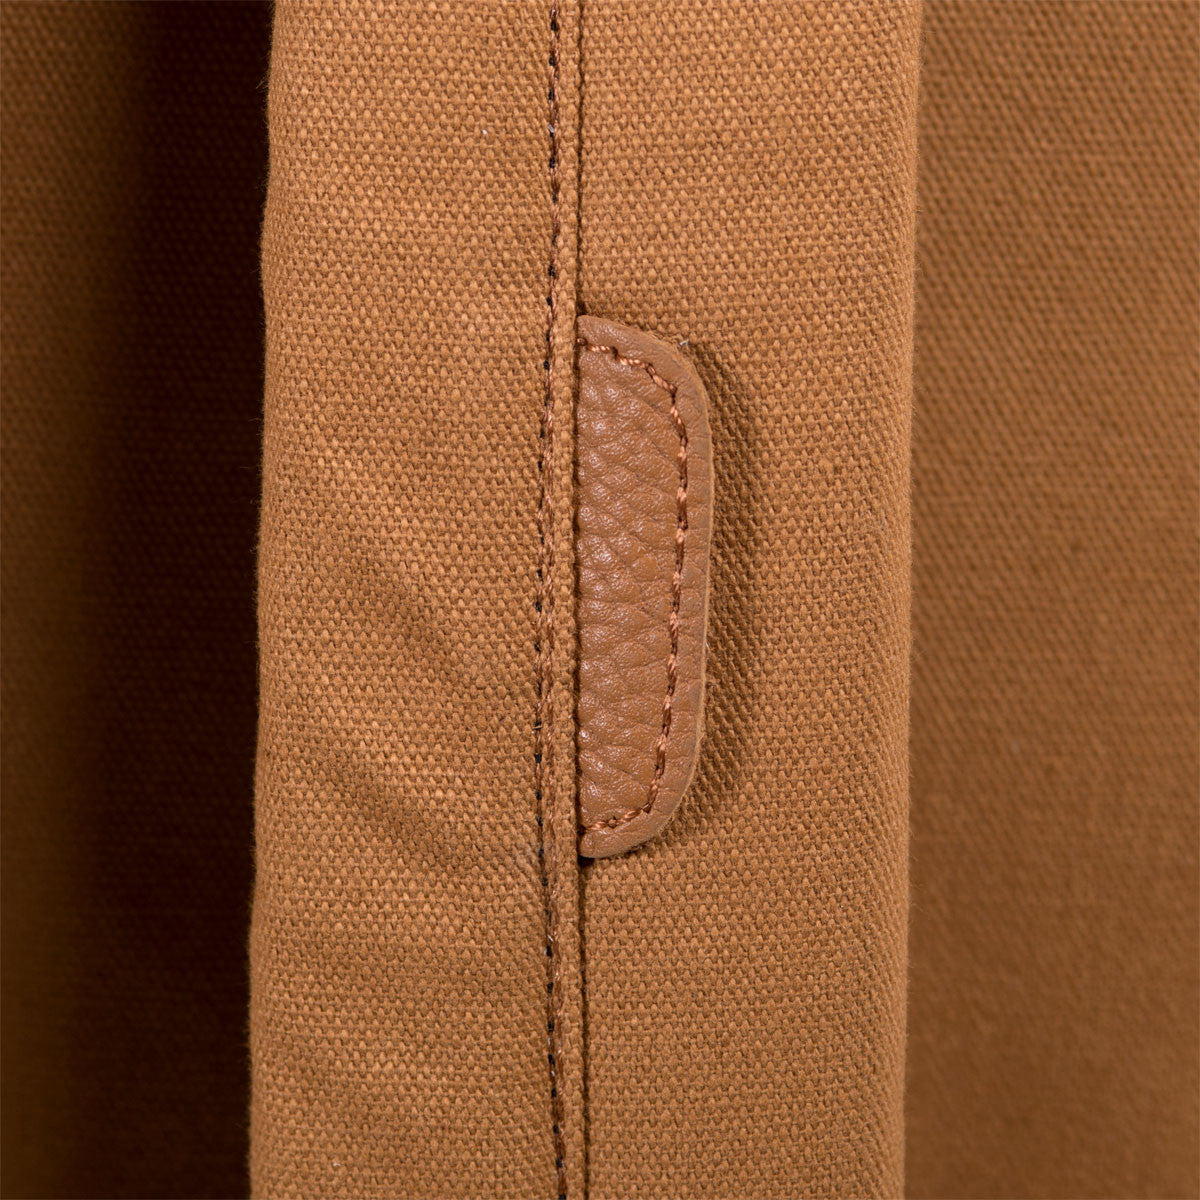 Herschel Supply Co.: Settlement Backpack - Caramel Coated Cotton Canvas (Select Series) detail